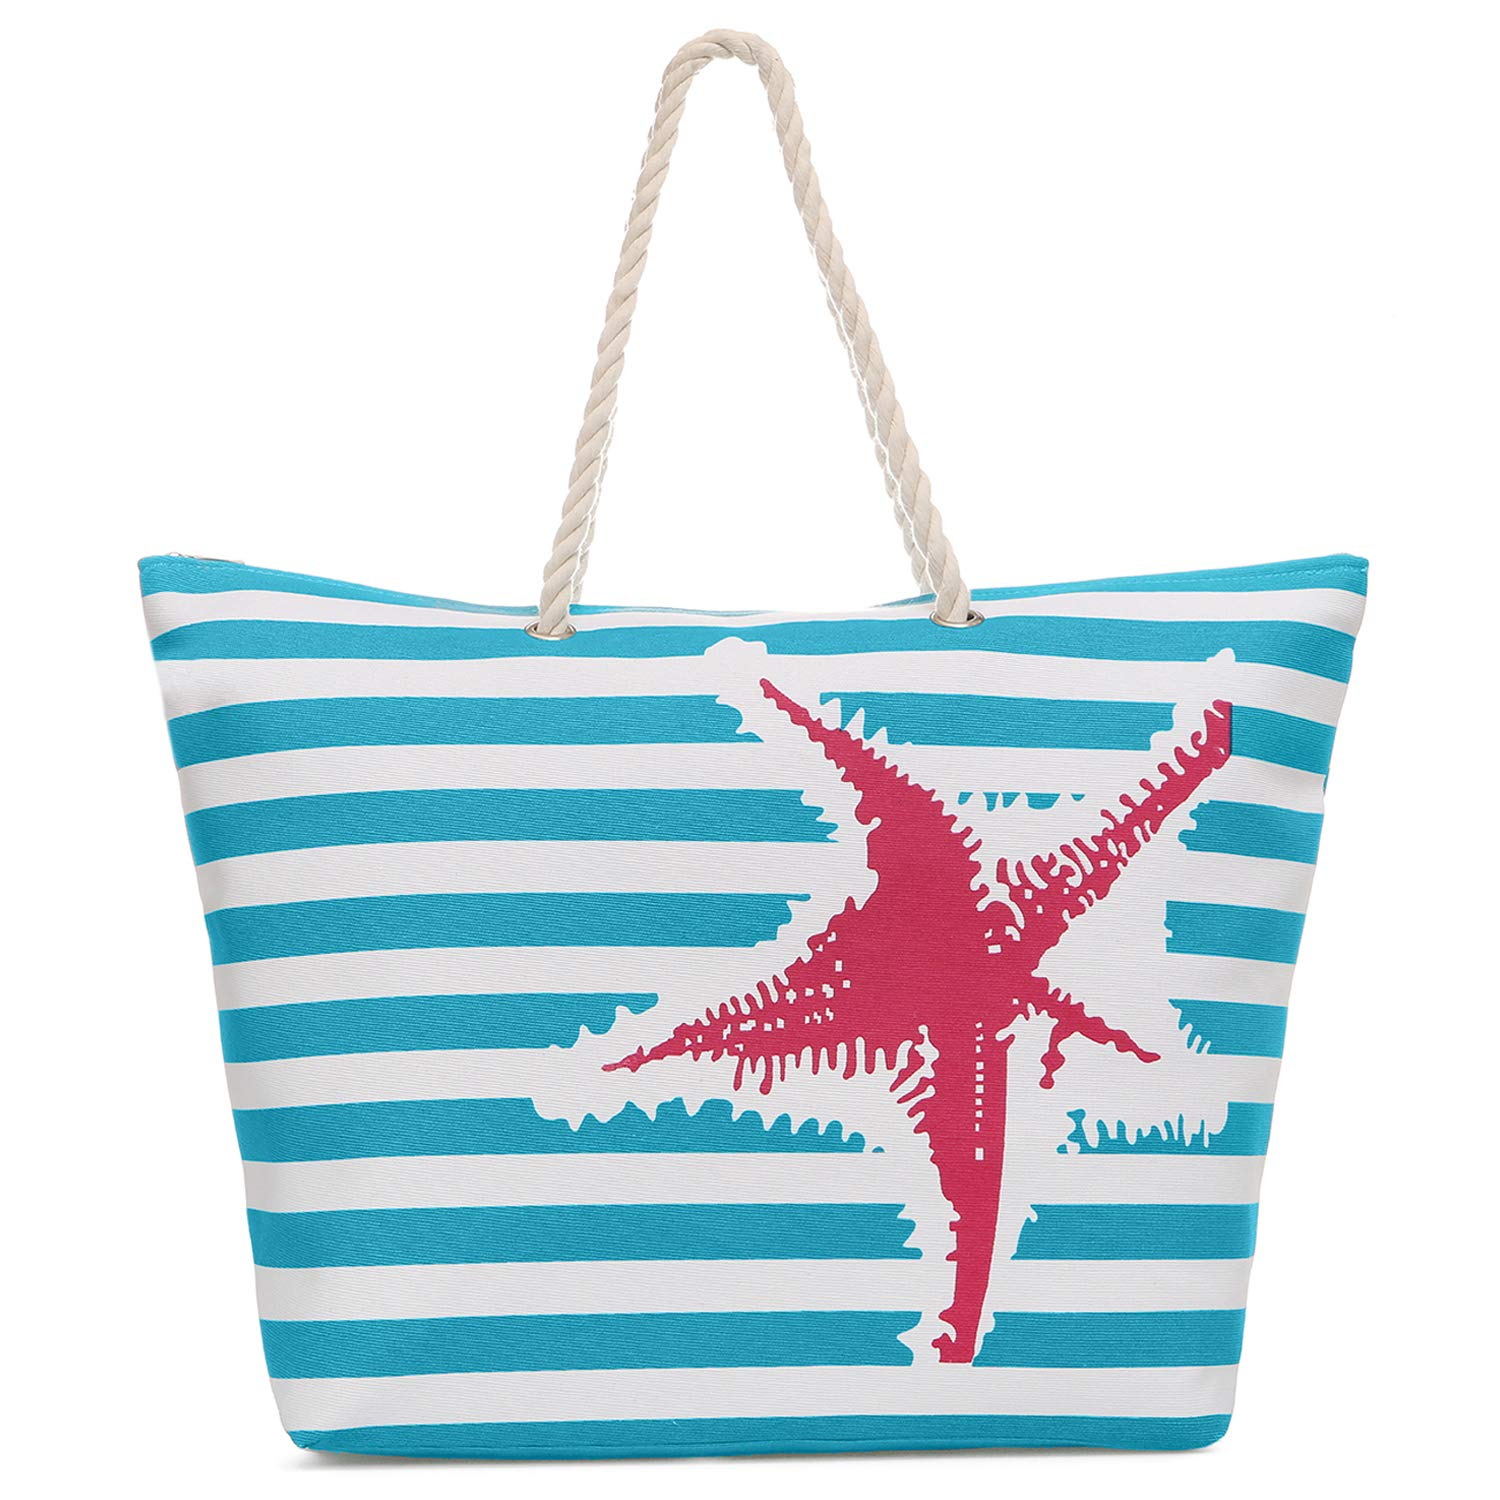 Large Canvas Striped Beach Bag - Top Zipper Closure - Waterproof Lining - Tote Shoulder Bag For Gym Beach Travel (Turquoise starfish)